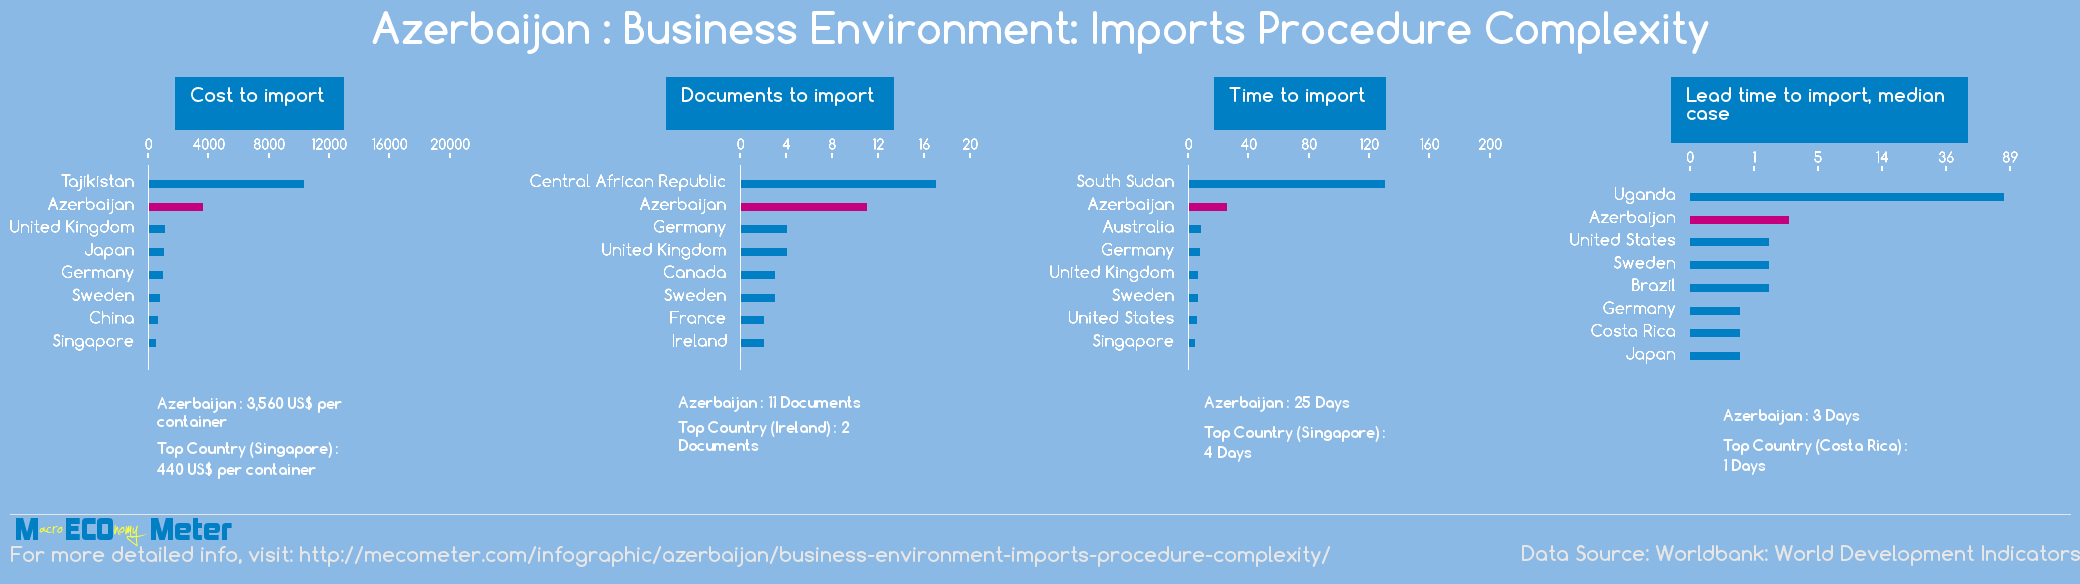 Azerbaijan : Business Environment: Imports Procedure Complexity